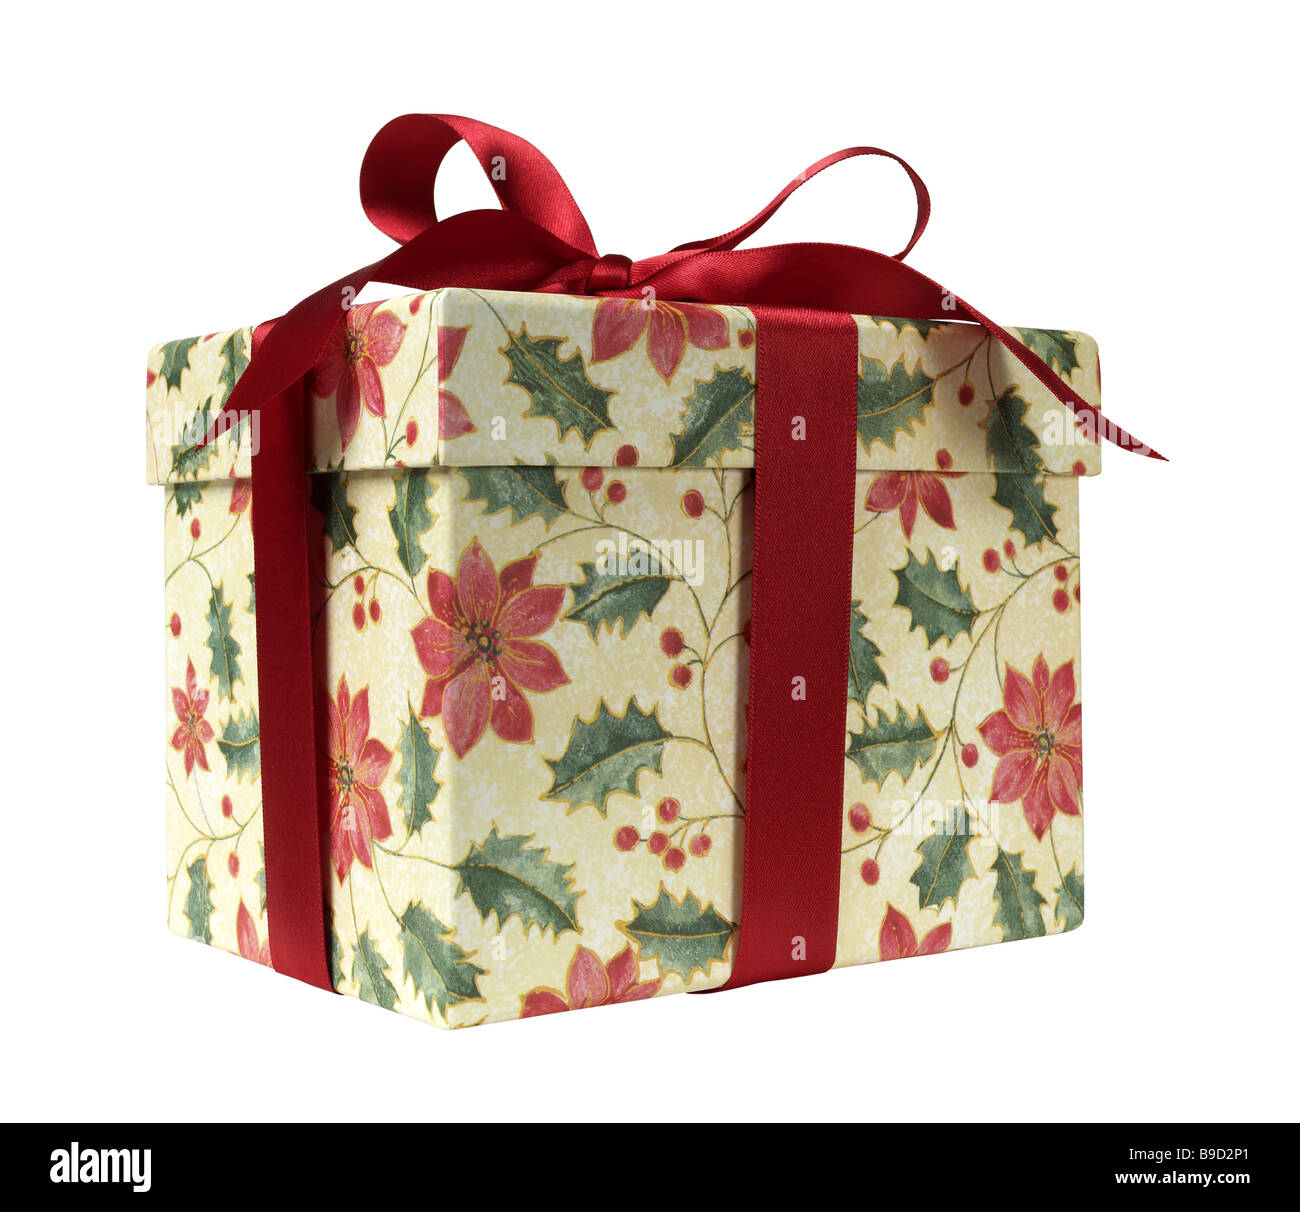 Gift Present Box with bow - Stock Image